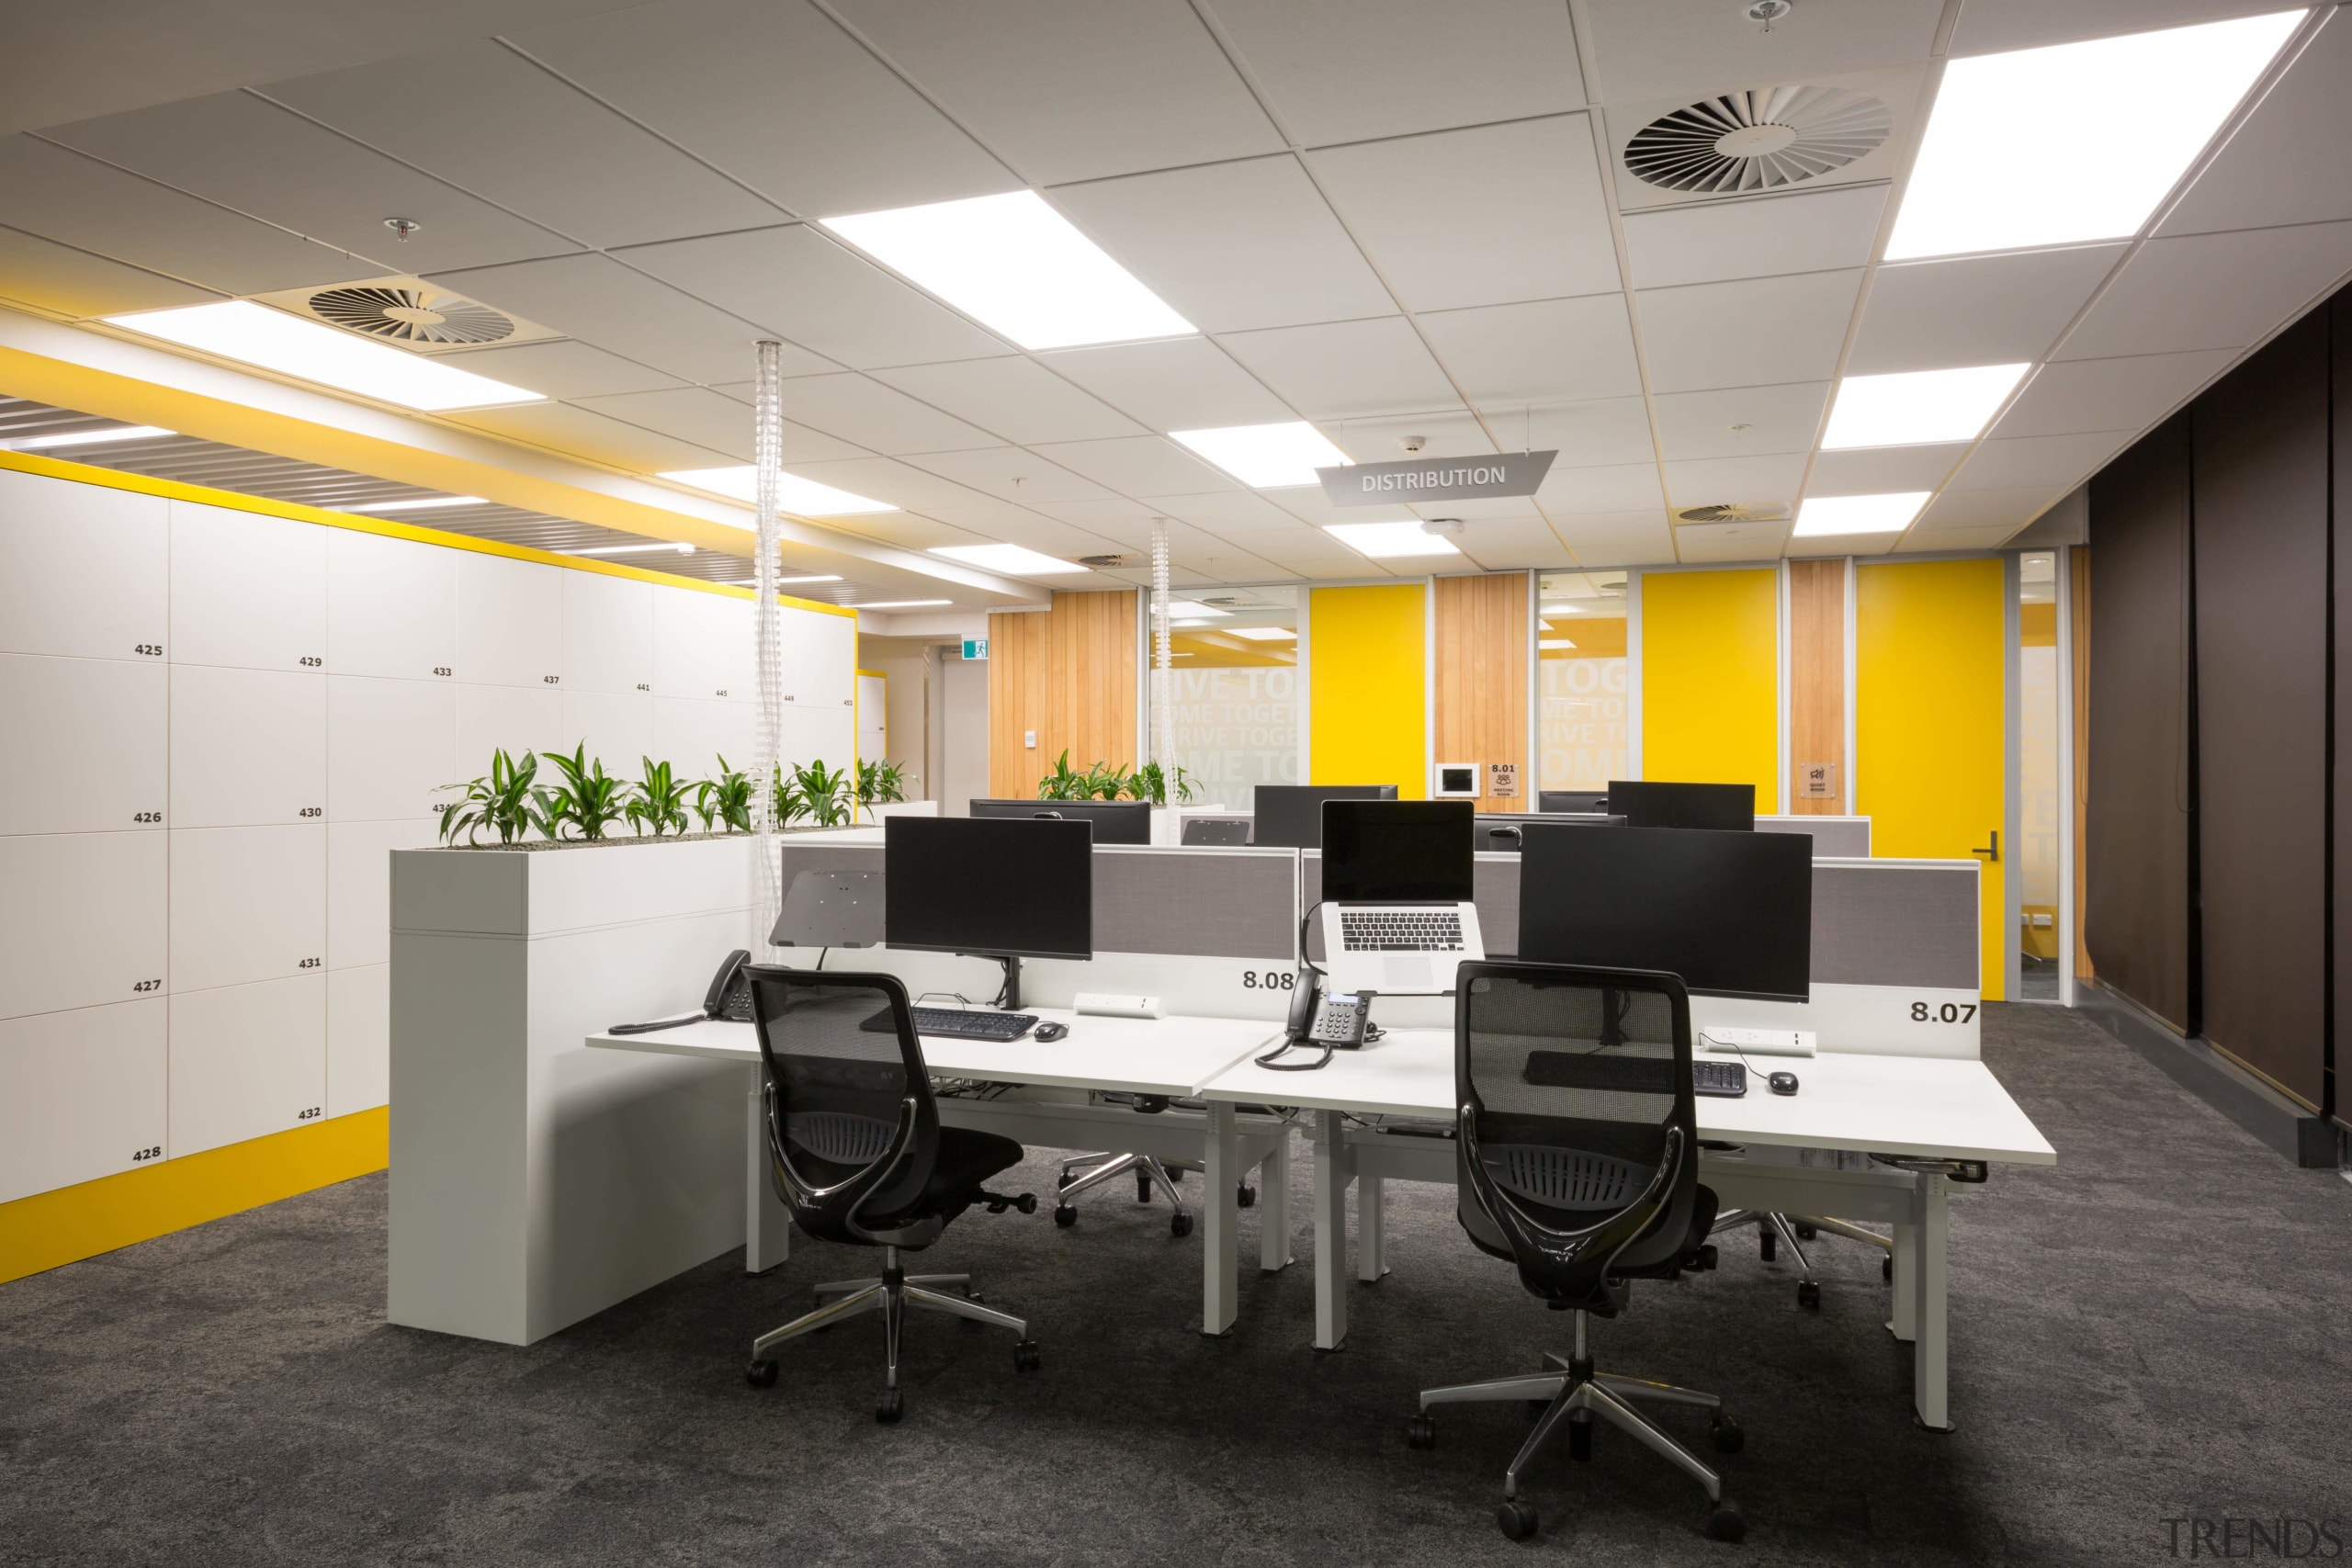 The locker surrounds and wall accents are yellow ceiling, conference hall, desk, furniture, interior design, office, product design, white, gray, black